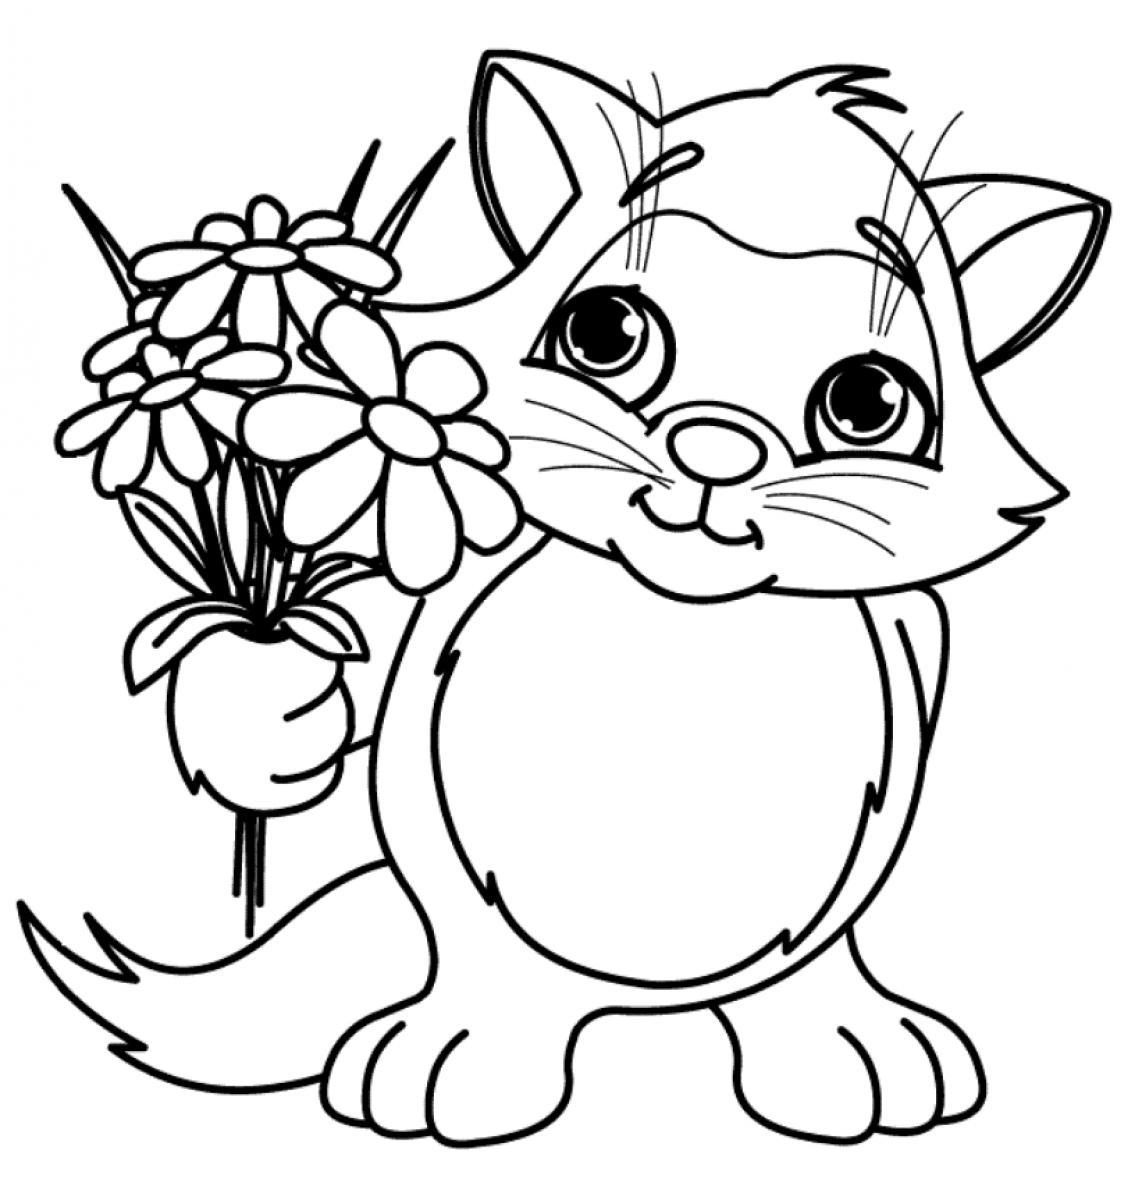 images of flowers to color butterflies on flowers coloring page free printable to flowers of images color